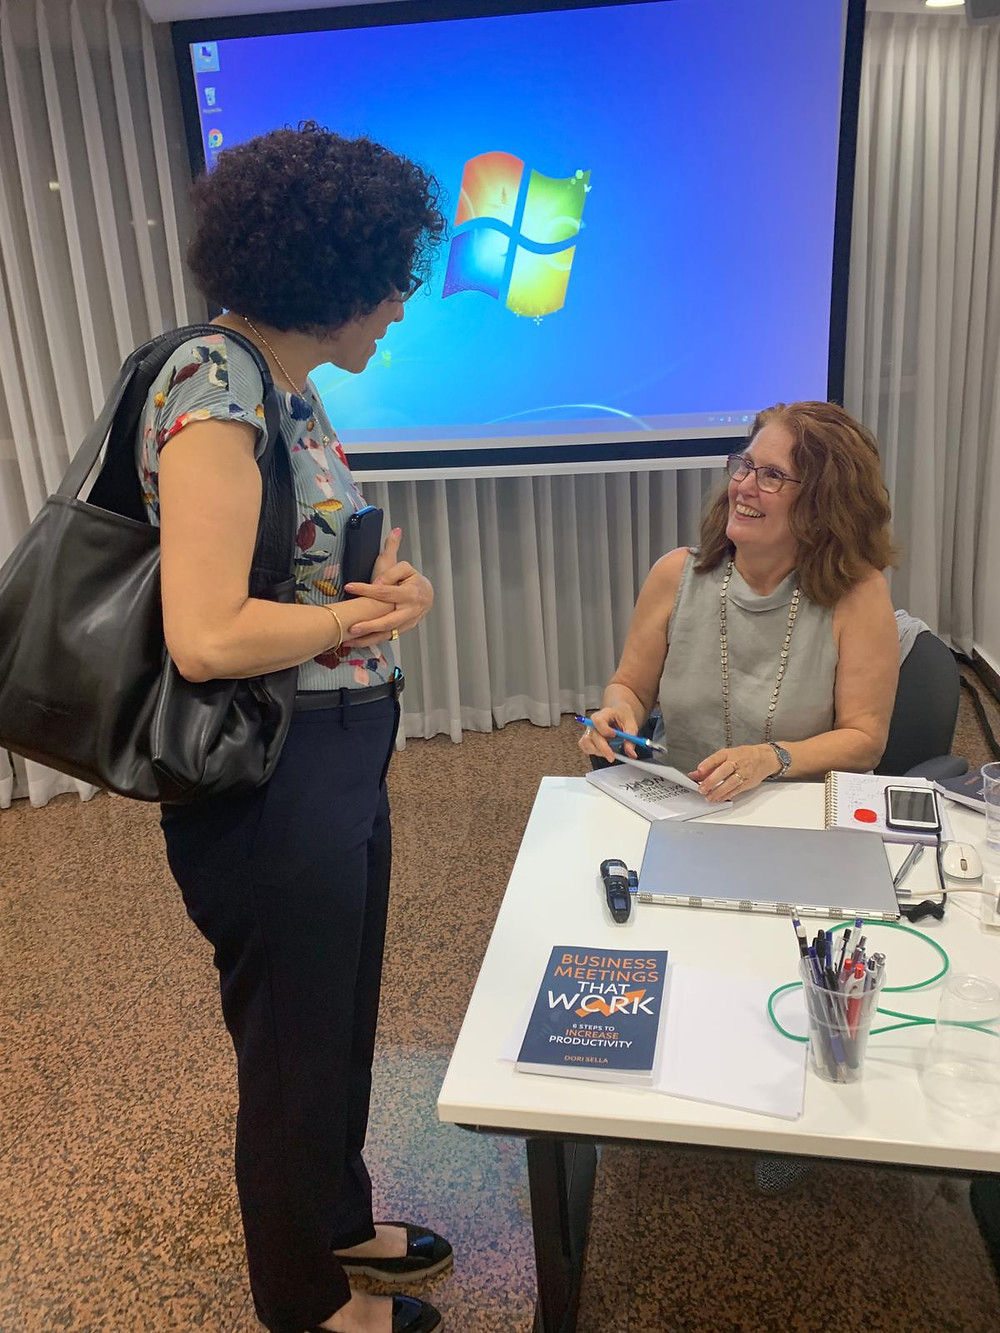 Working with experienced, top Women Executives was refreshing and invigorating